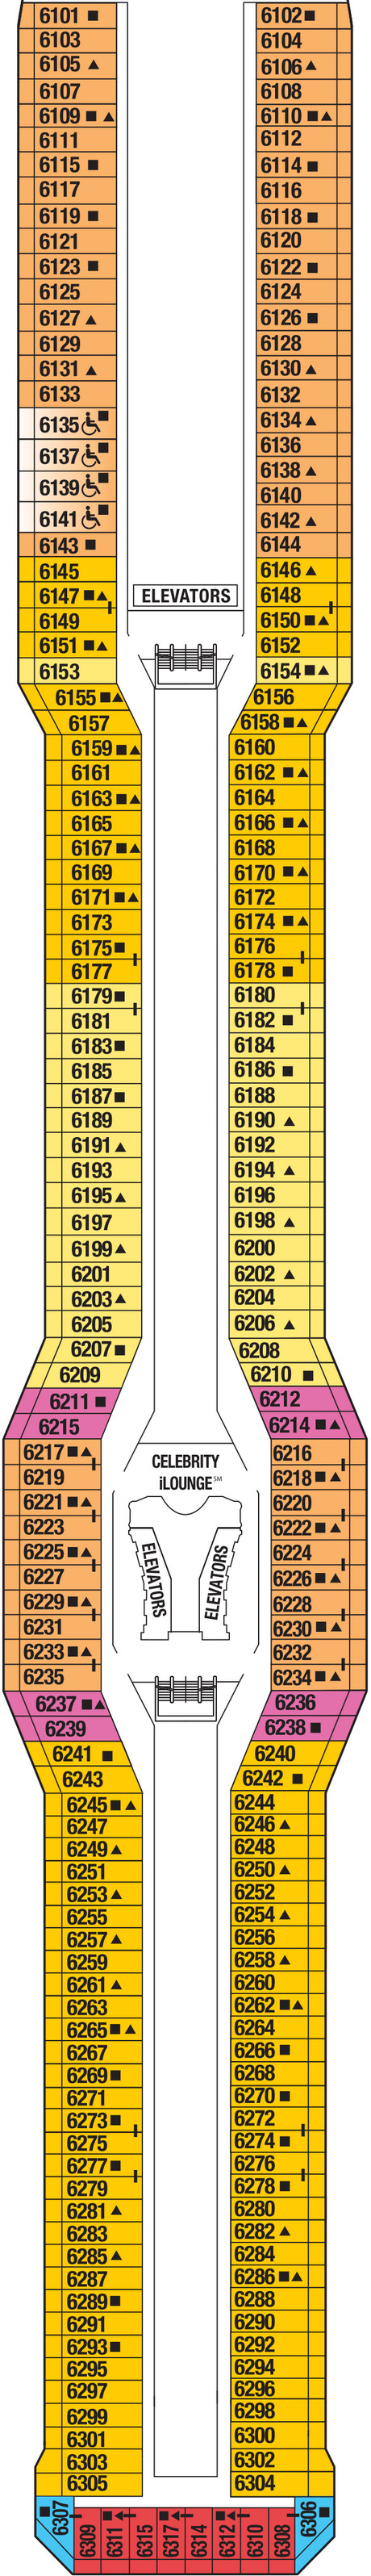 Celebrity Silhouette Continental Deck layout